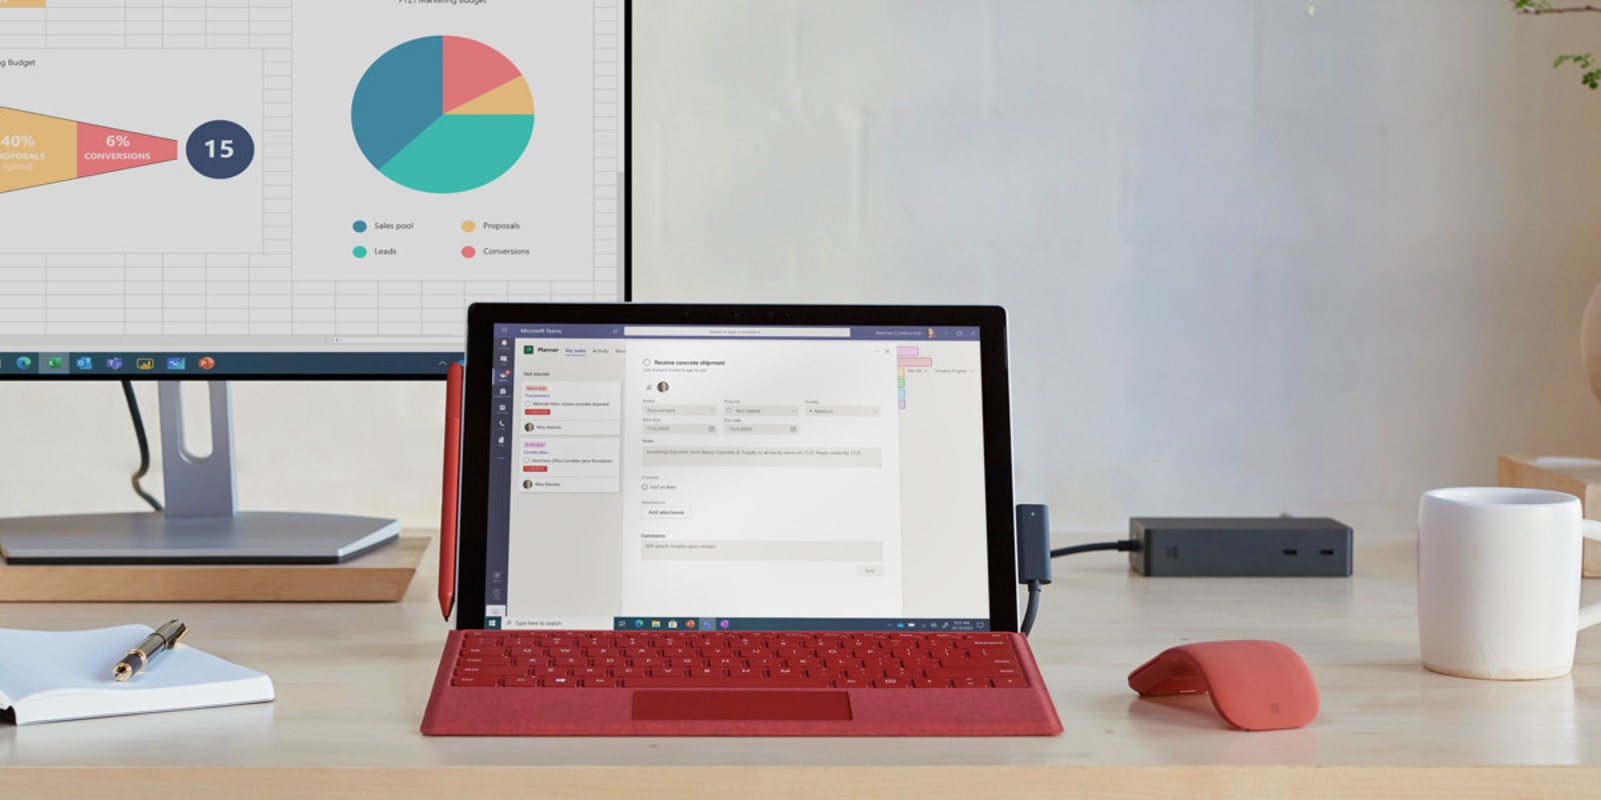 Windows 10 hardware security enabled by default on new Surface PC